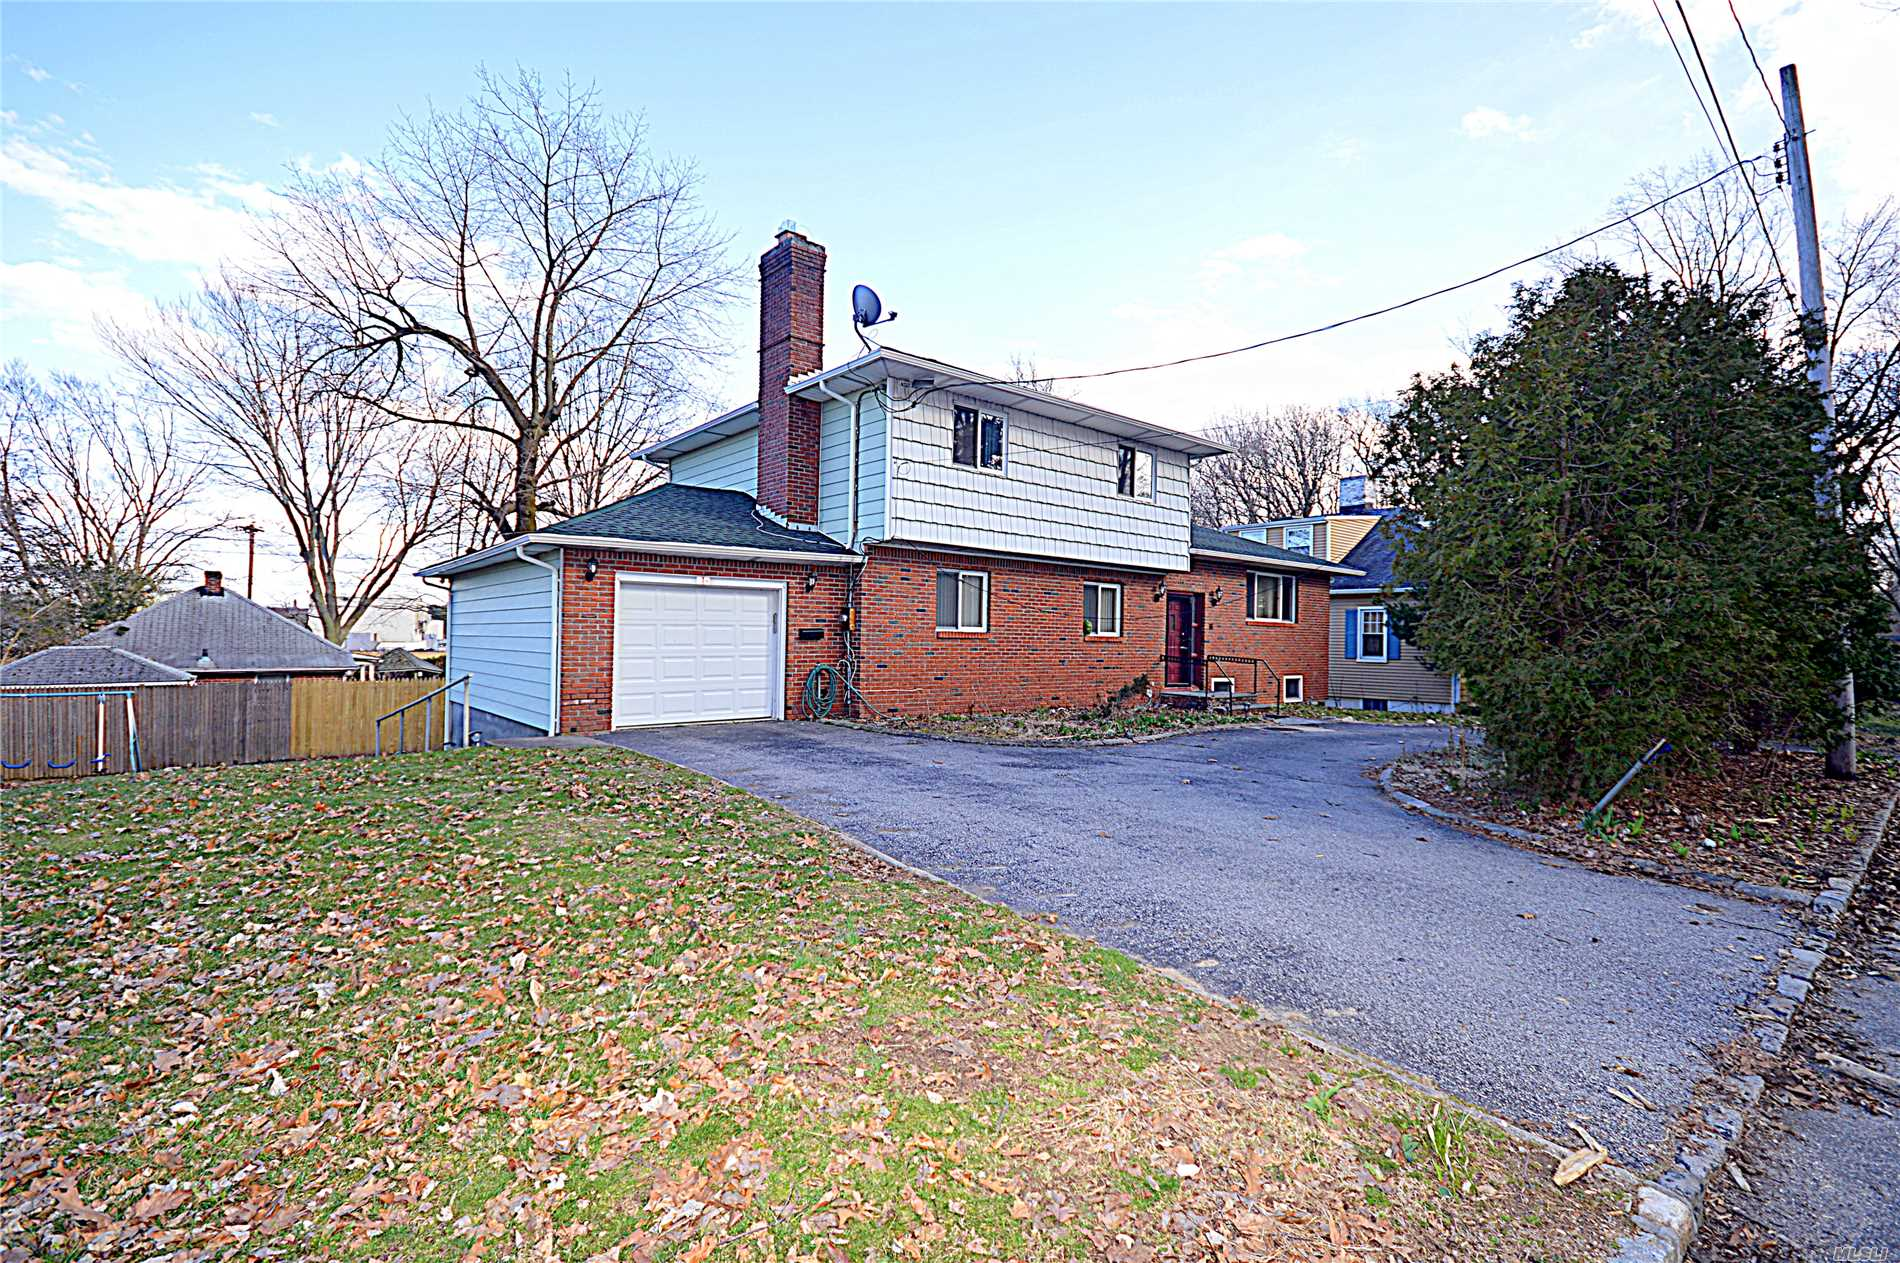 Best Value!! Motivated Seller!! For A Big, Bright Spacious Mint++ Condition Split Home In Roslyn Sd Great Location! Close To Roslyn Harbor. Rooms With Plenty Of Closets, Very Close To Lirr. All Updates Were Done In 2008 Wood Floors Through Out, Nice Size Eat-In-Kitchen, 3 Bthrms. 4 Years New Roof, Walk Out Bsmt. Lot To Offer!! Don't Miss!